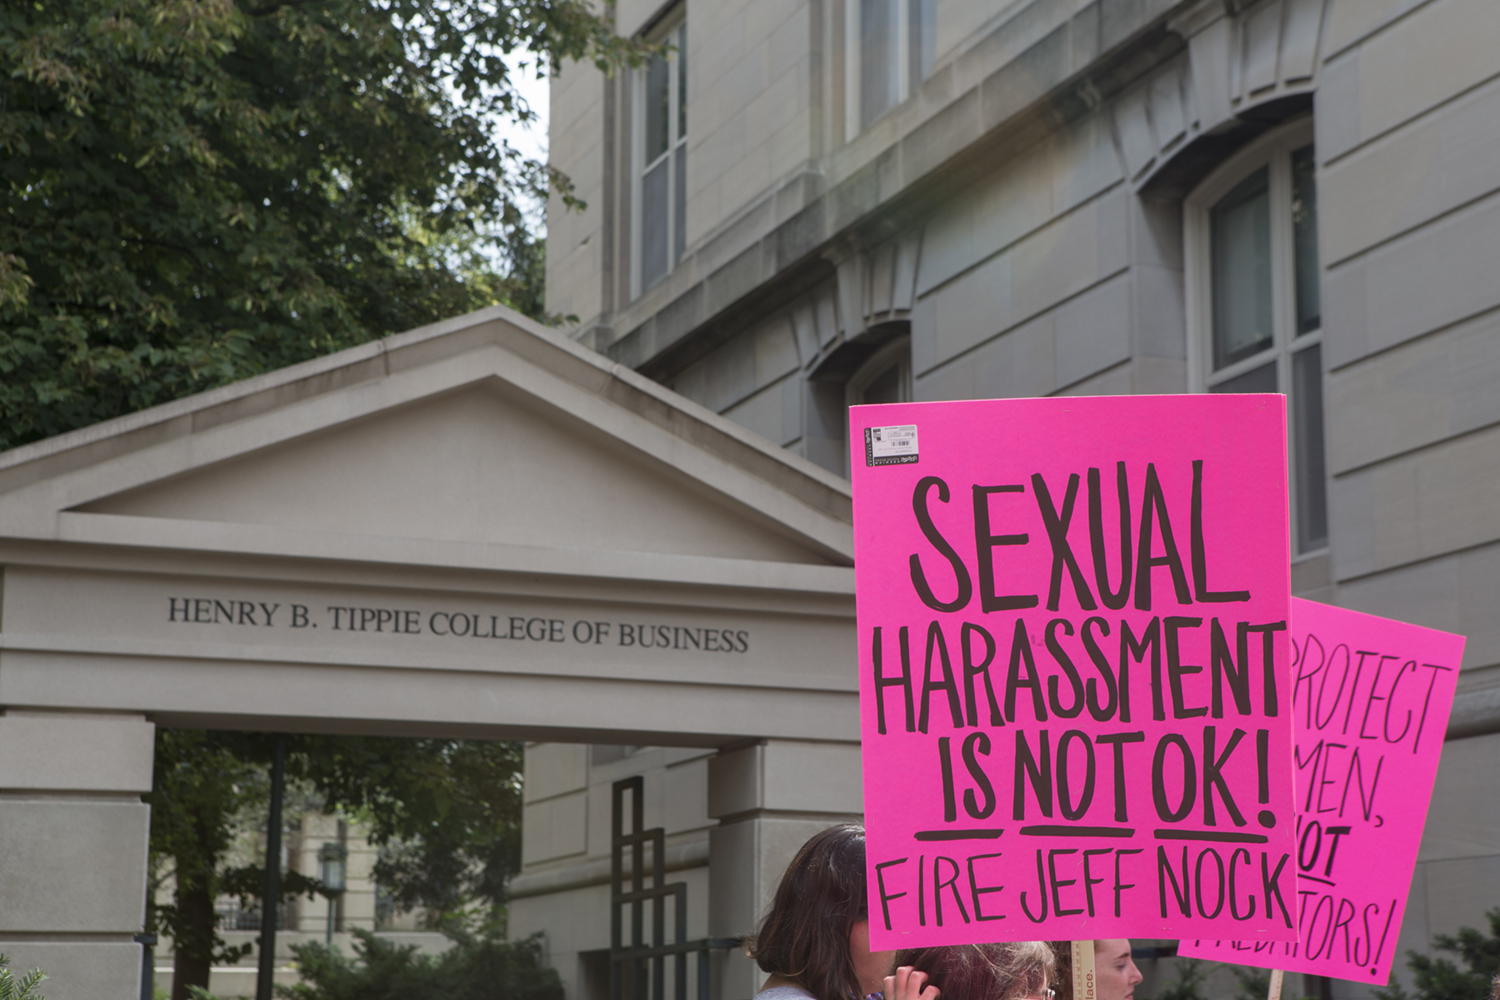 A protester holds their sign during the Jeffery Nock protest outside of the Pappajohn Business Building on Aug. 30, 2018. Students and faculty turned out to protest Professor Jeffery B. Nock, who is still employed at the university despite issued a criminal trespass warning after allegedly taking photographs of women at the Campus Recreation and Wellness Center.